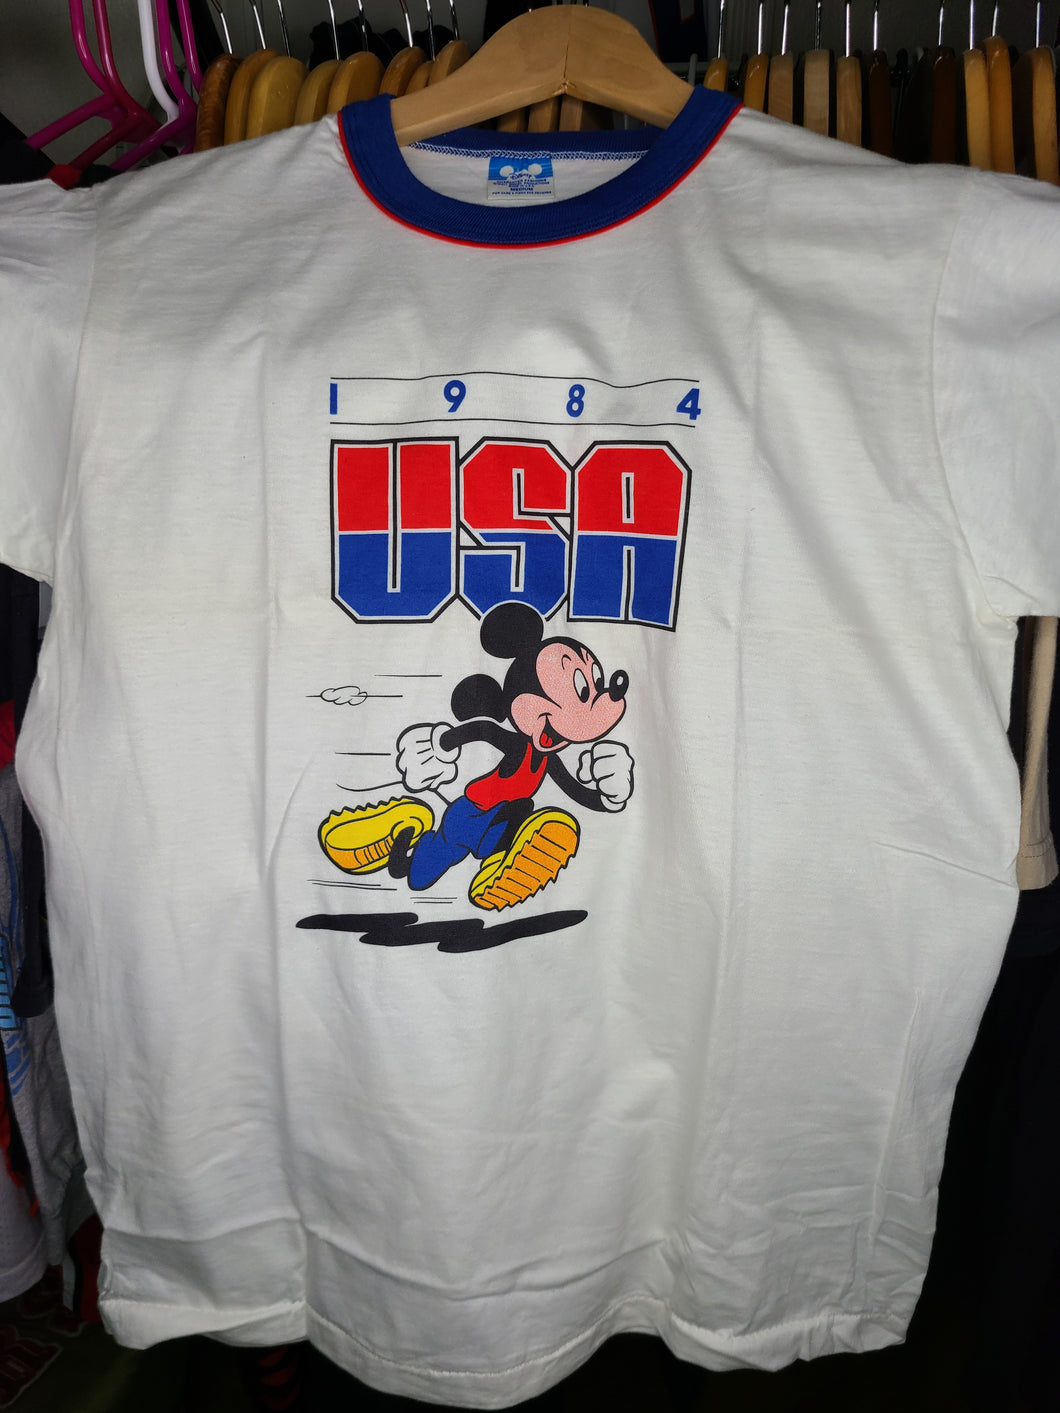 Vintage Mens Disney Mickey Mouse 1984 USA Olympic Tshirt Size Medium-White